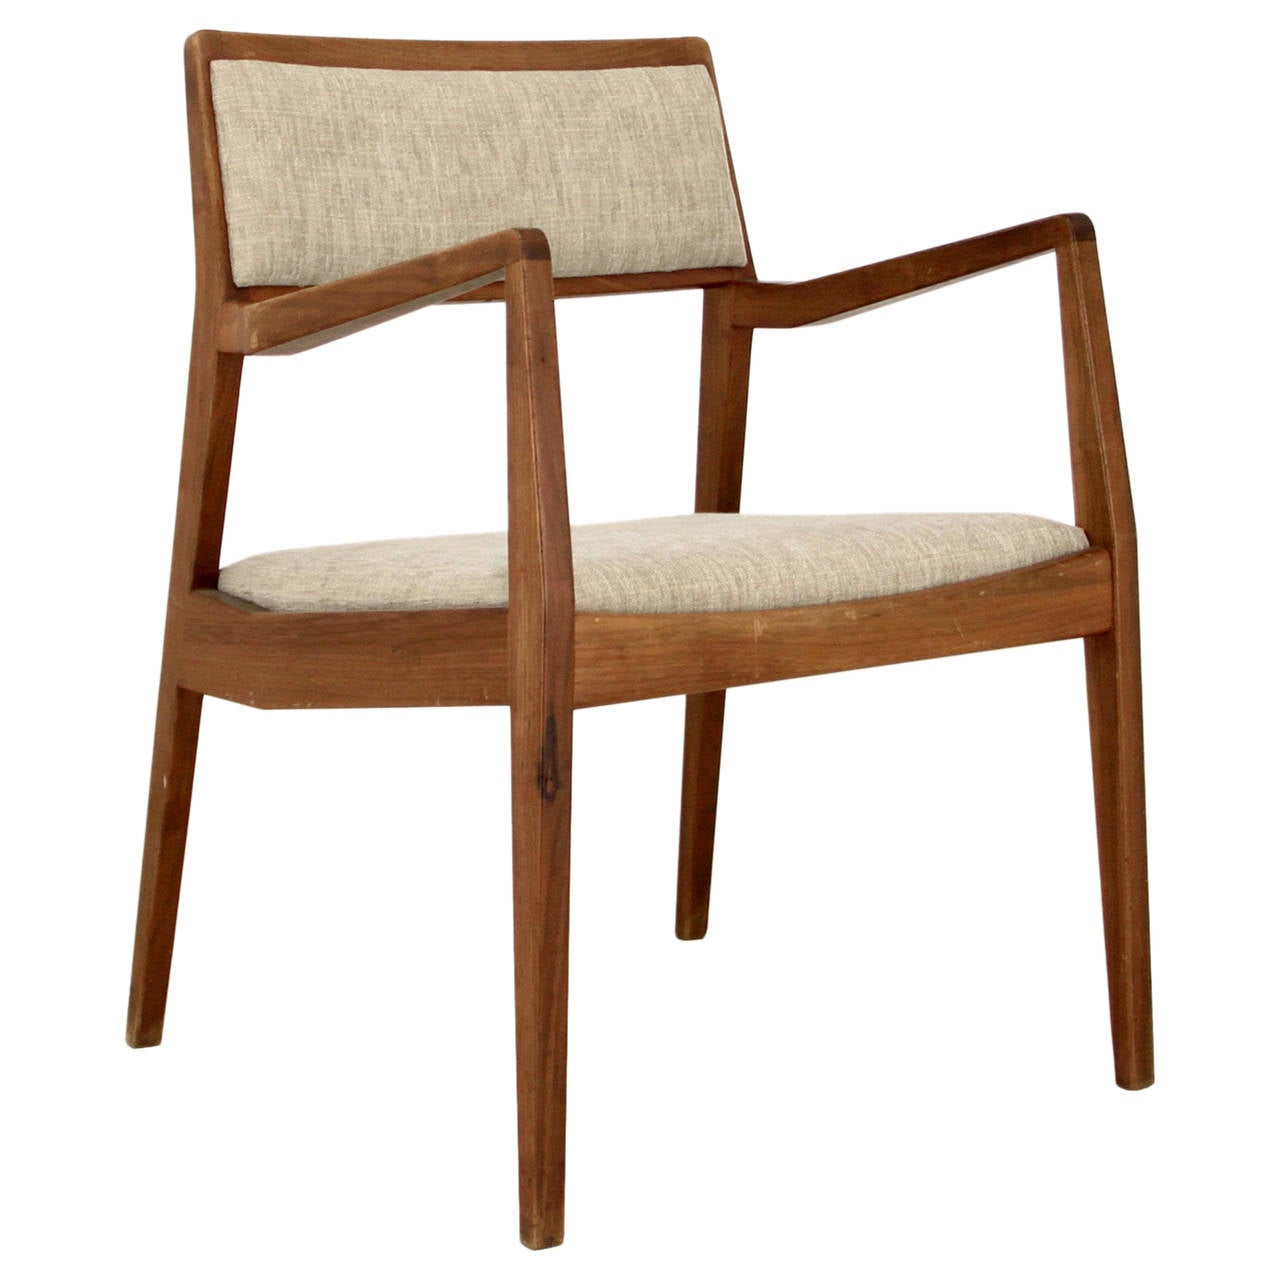 Jens Risom Side Chair Jens Risom Playboy Armchair Chair At 1stdibs